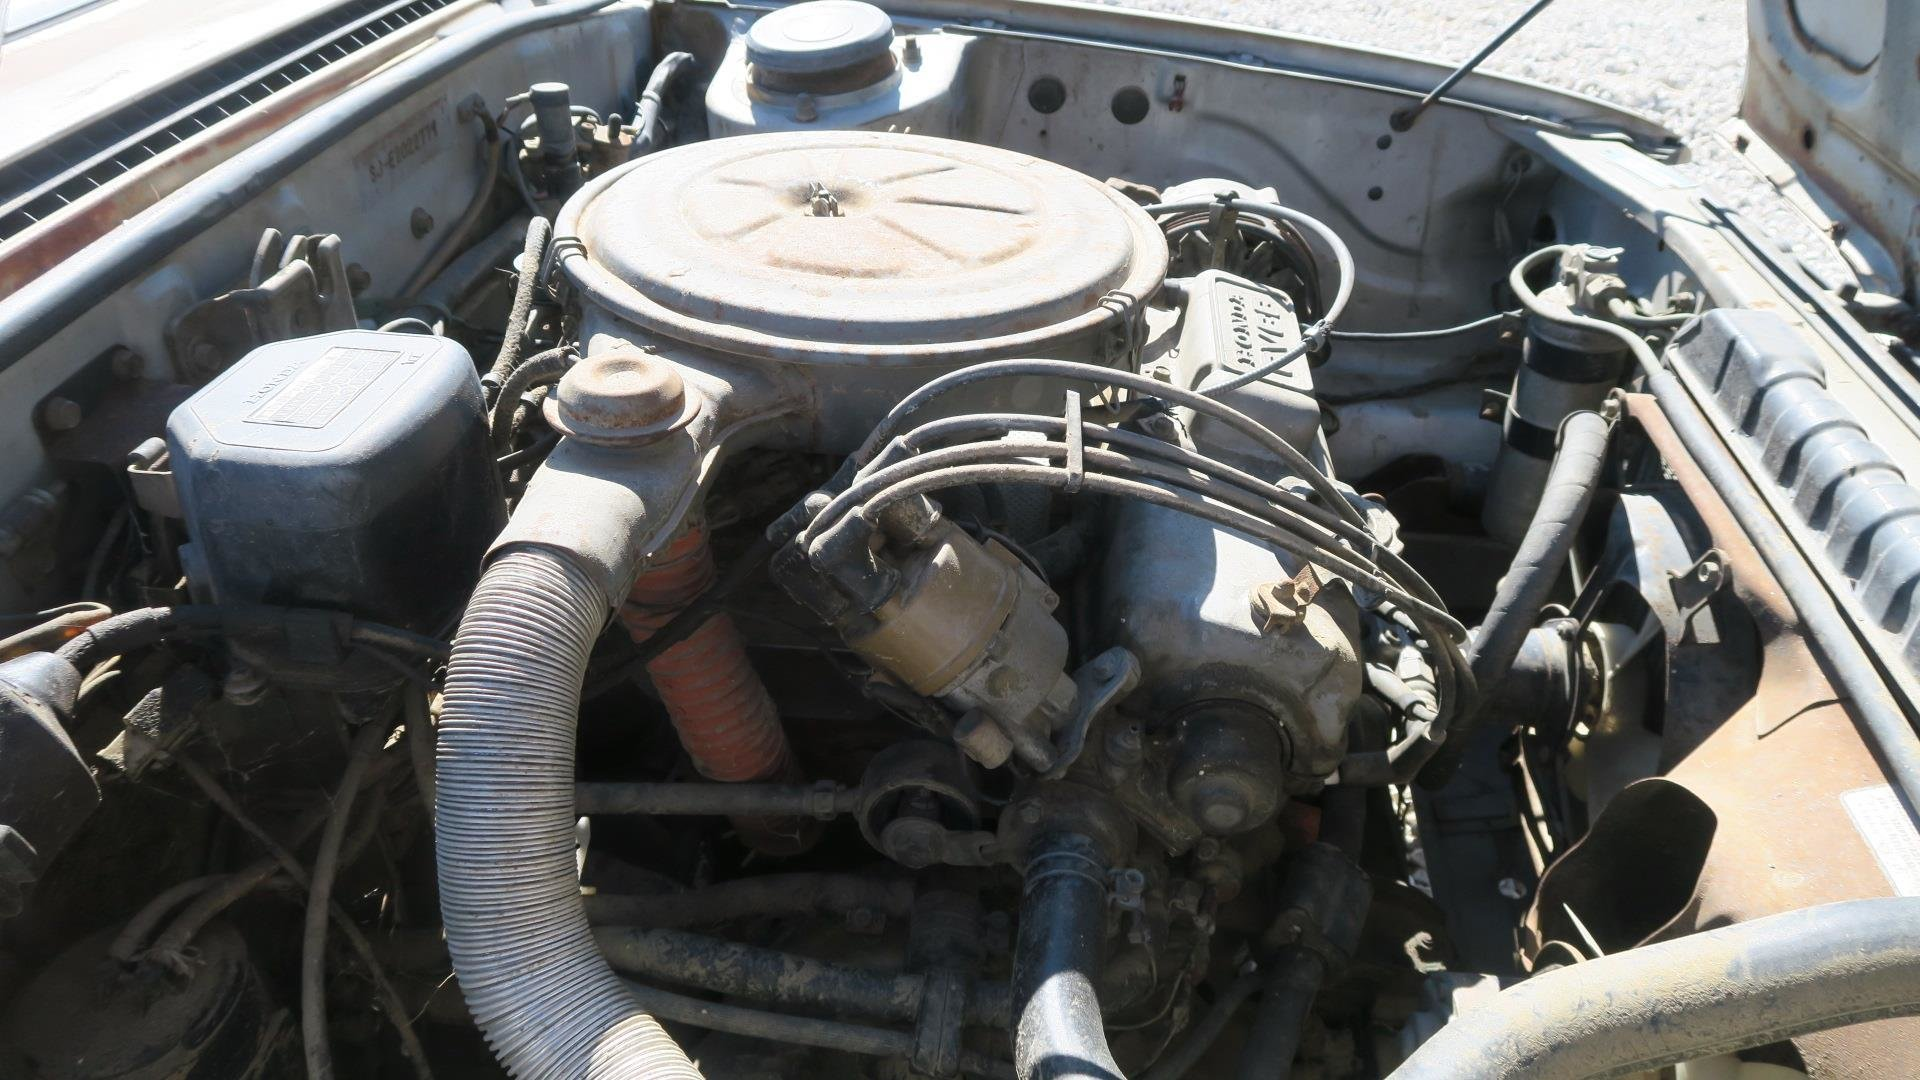 1977 Honda CVCC 5 Speed Project Silver(~)Black  $2.9k For Sale (picture 5 of 6)